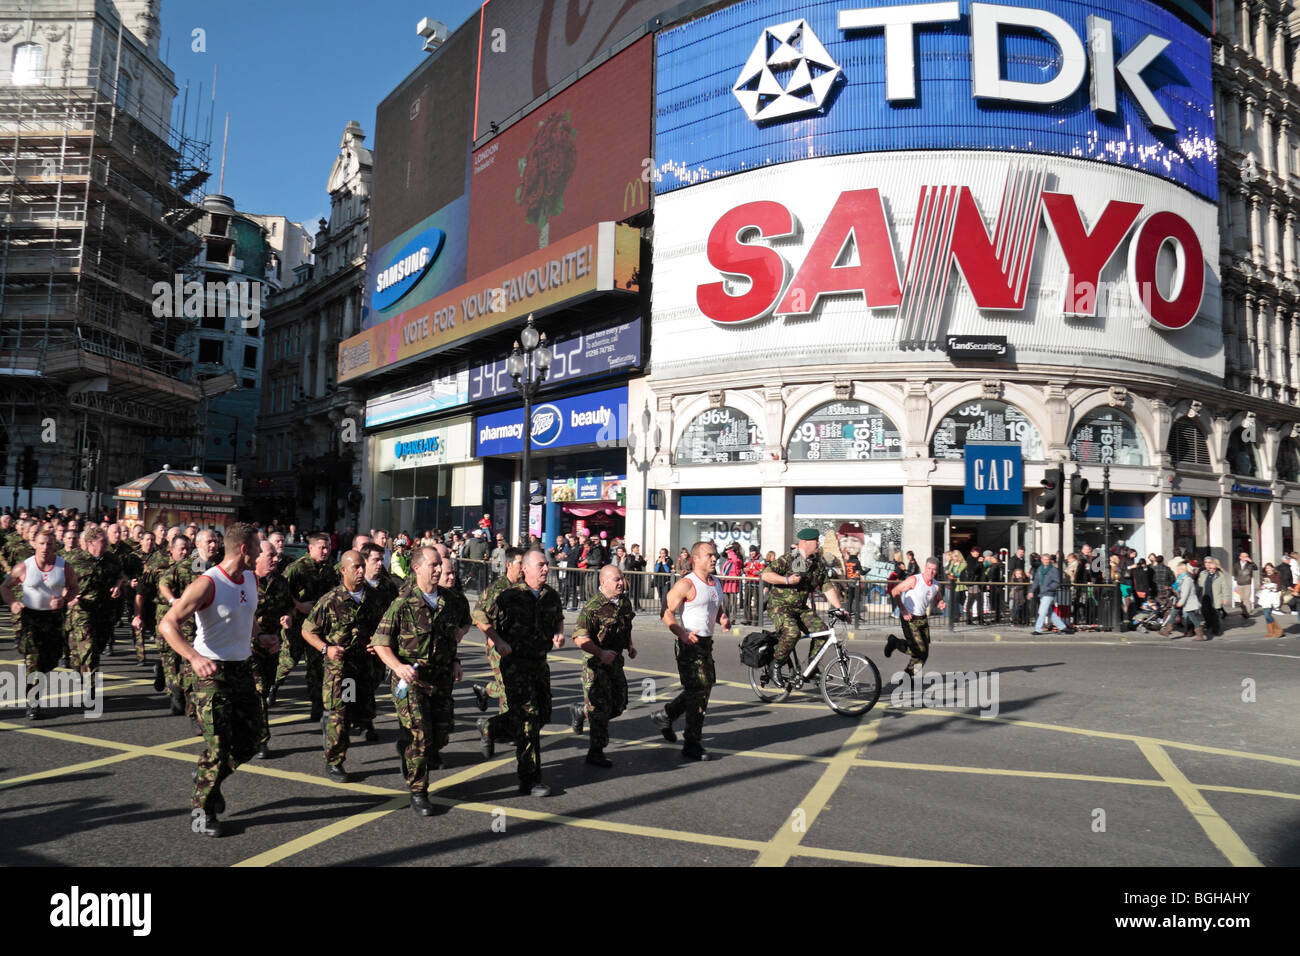 British Army soldiers jog through Piccadilly Circus, Central London, UK on a sponsored run fro charity. Nov 2009 - Stock Image